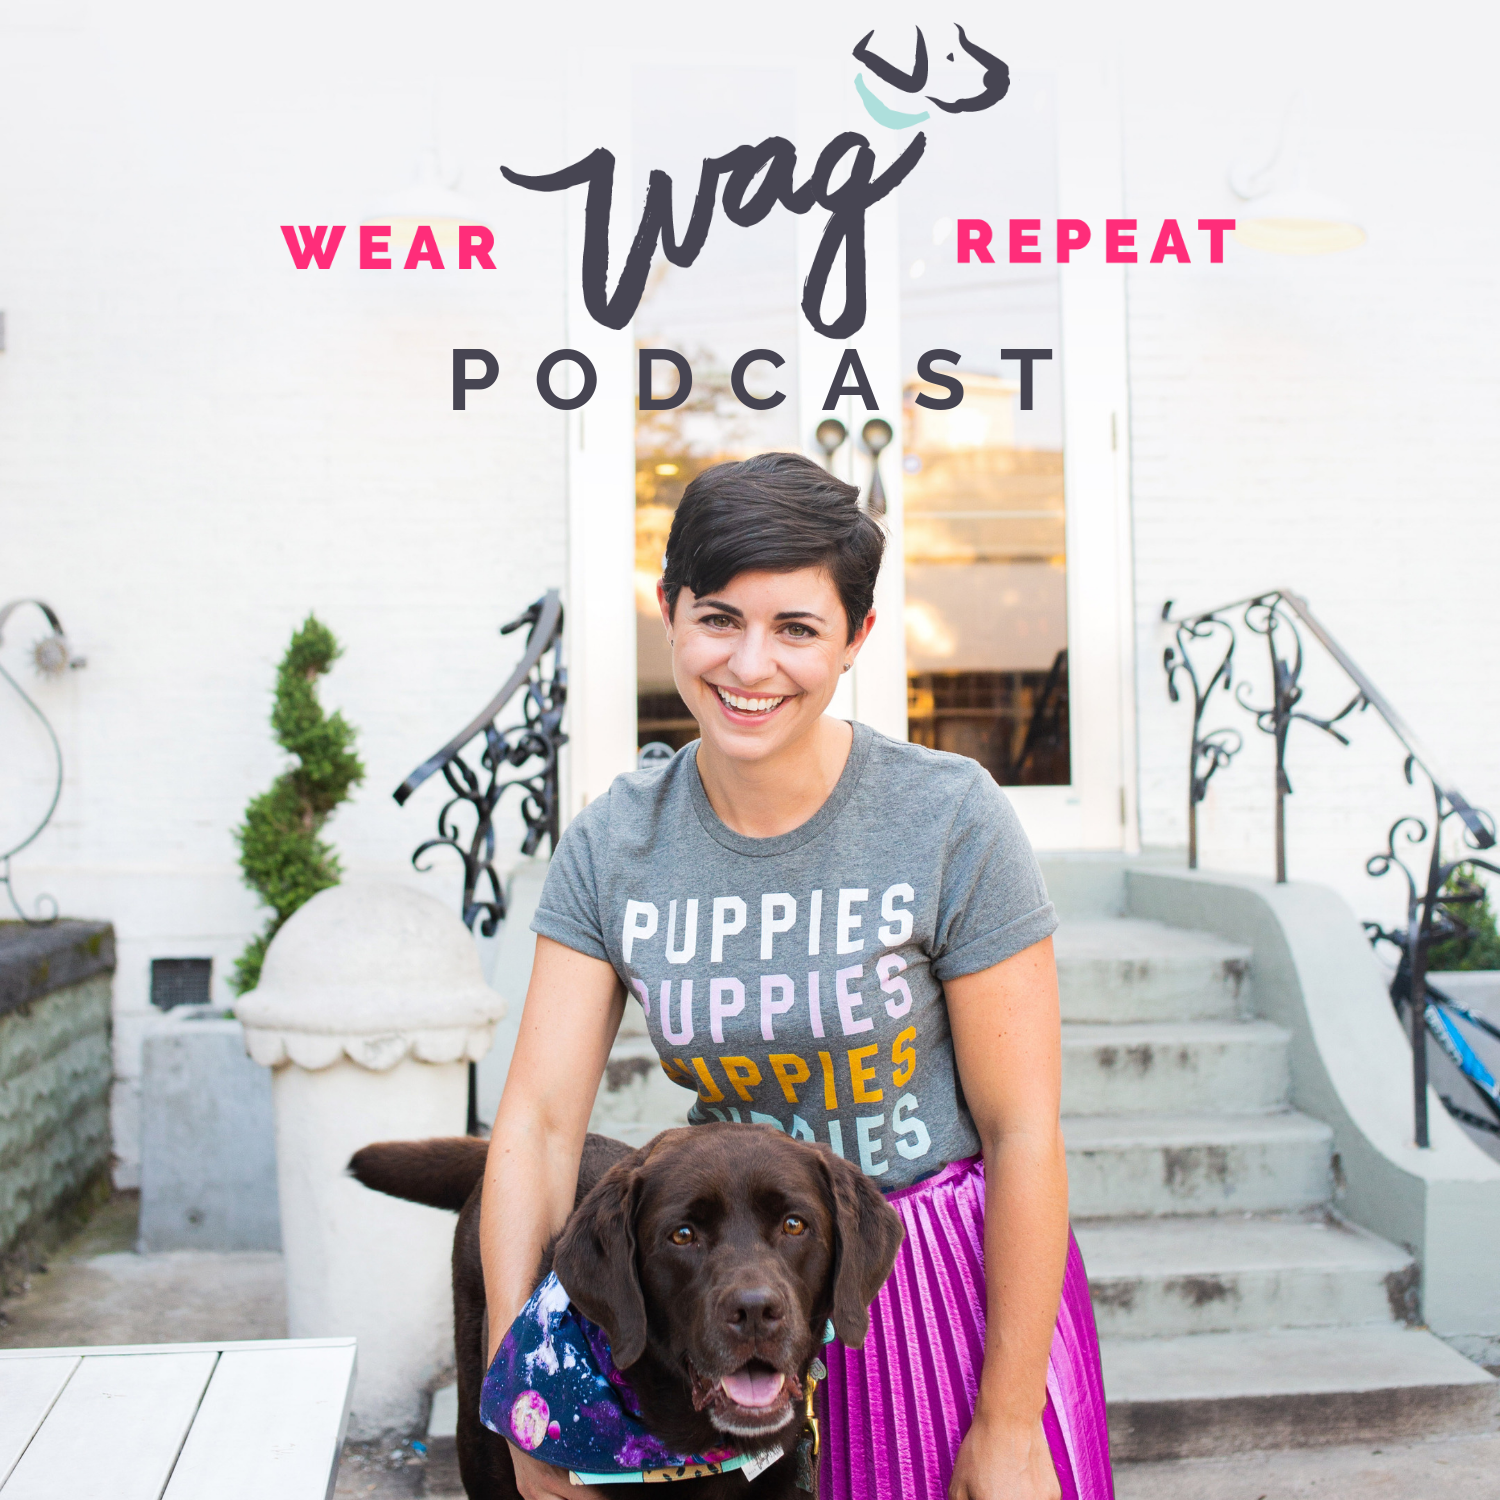 Wear Wag Repeat Podcast show art